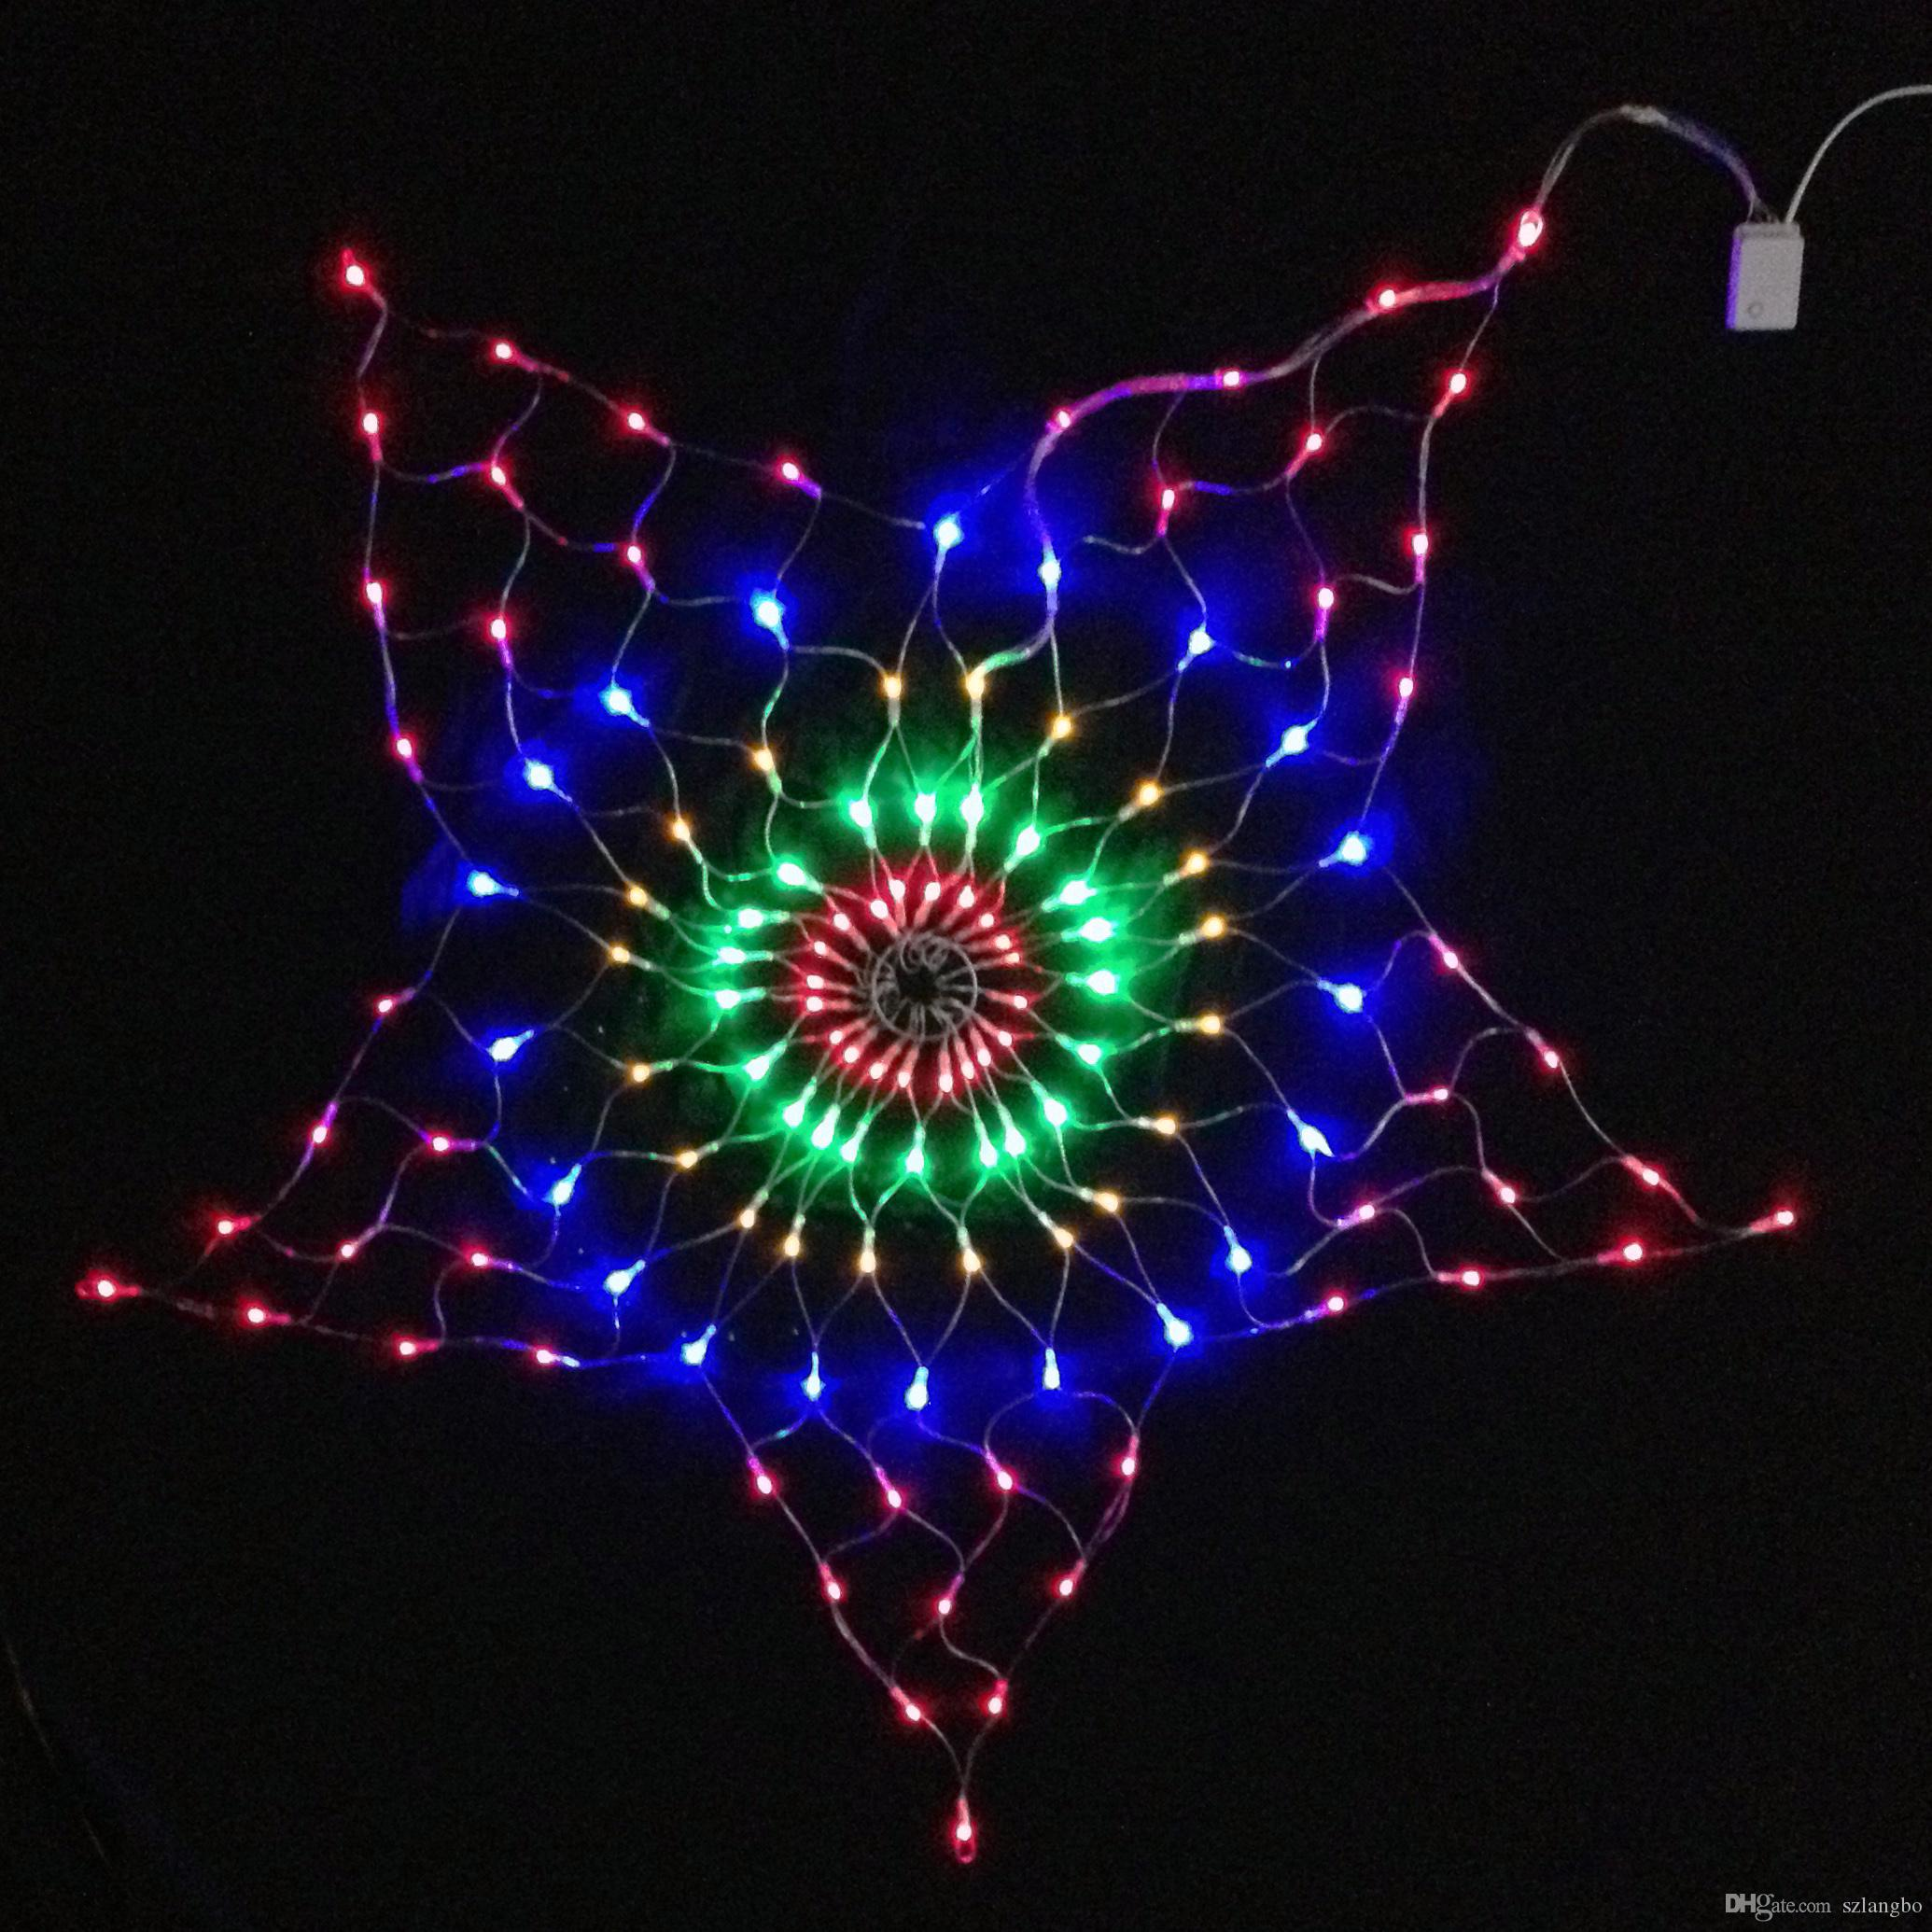 7W 130Pcs RGB LED Bulb Star Net Christmas Light Decoration AC220V Input 1.5 Meter Diameter Size Holiday Light , RGBY Color